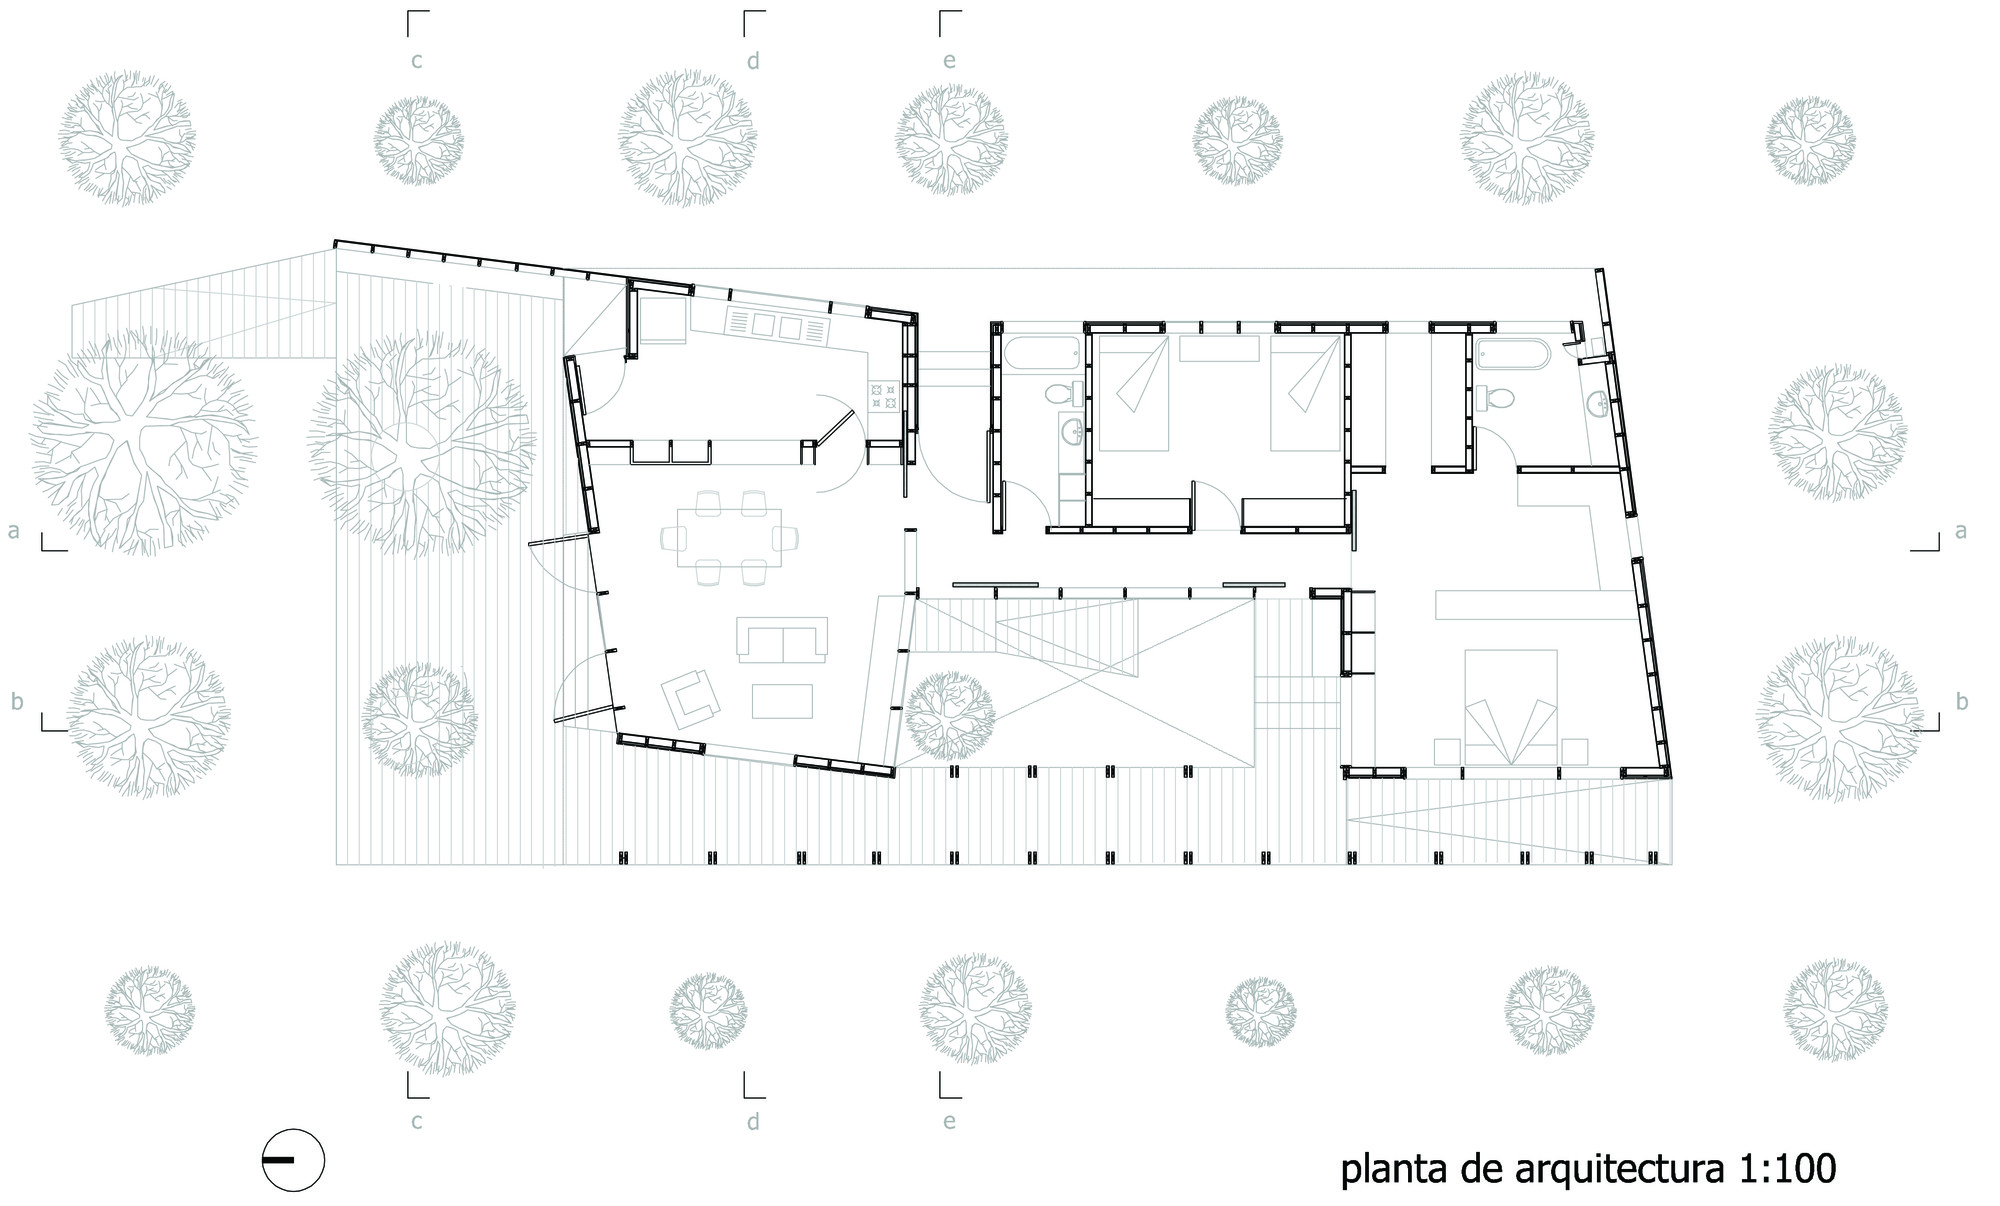 Casa lo ca as francisco abarca y camilo palma for Plantas de arquitectura